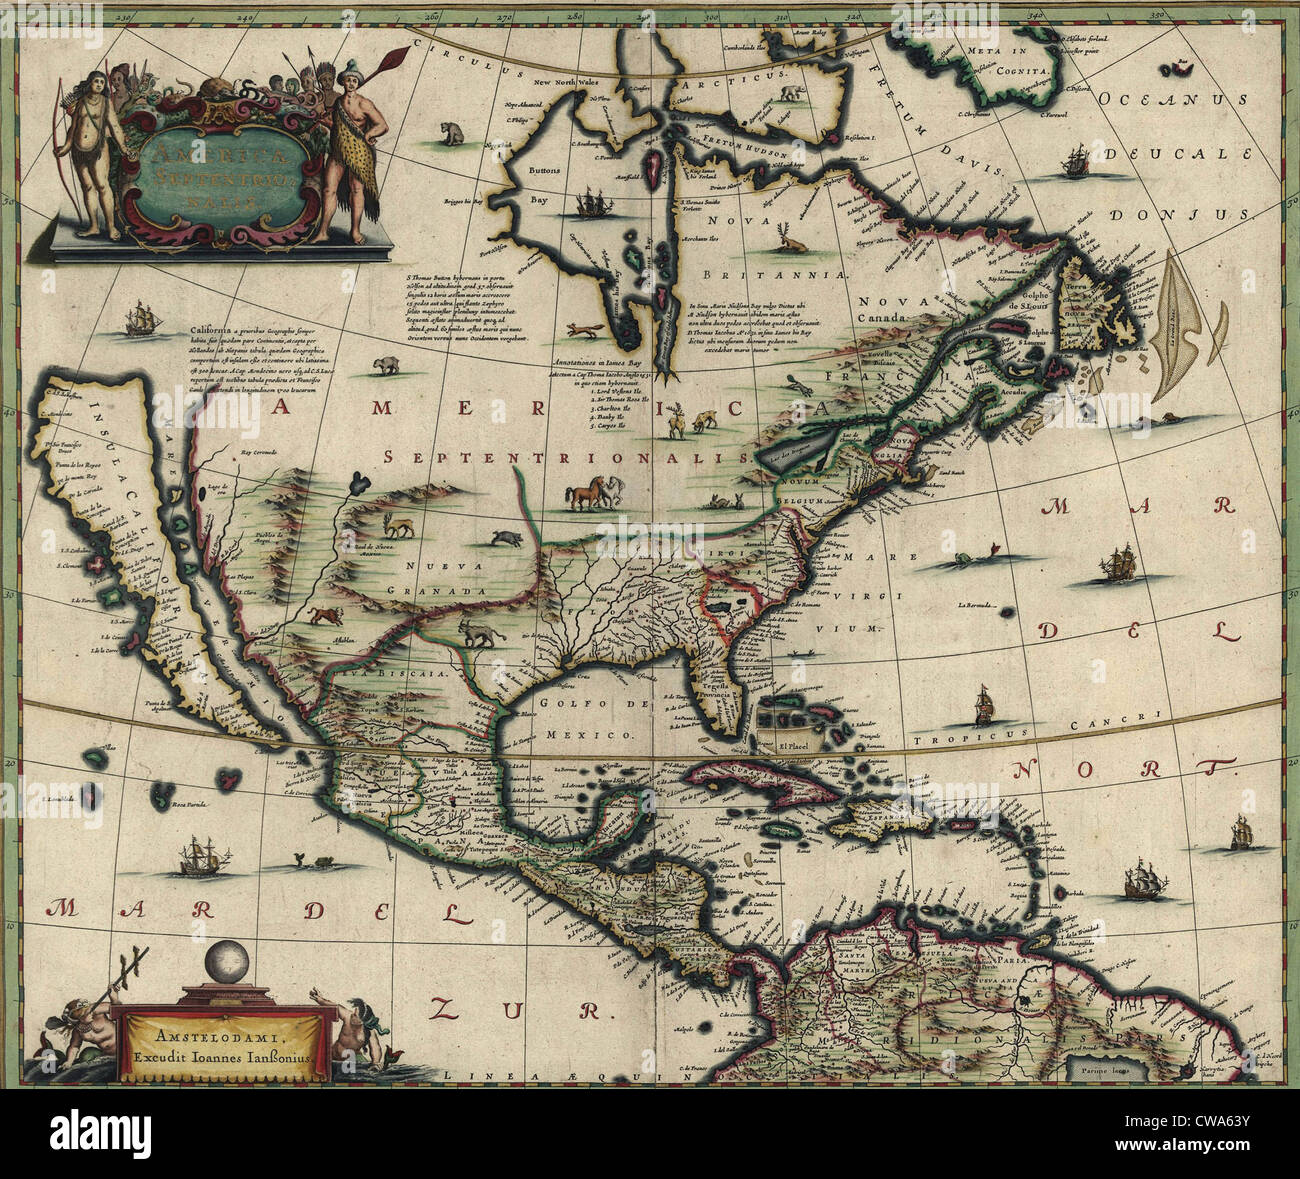 North American map created in 1652 showing California as an island